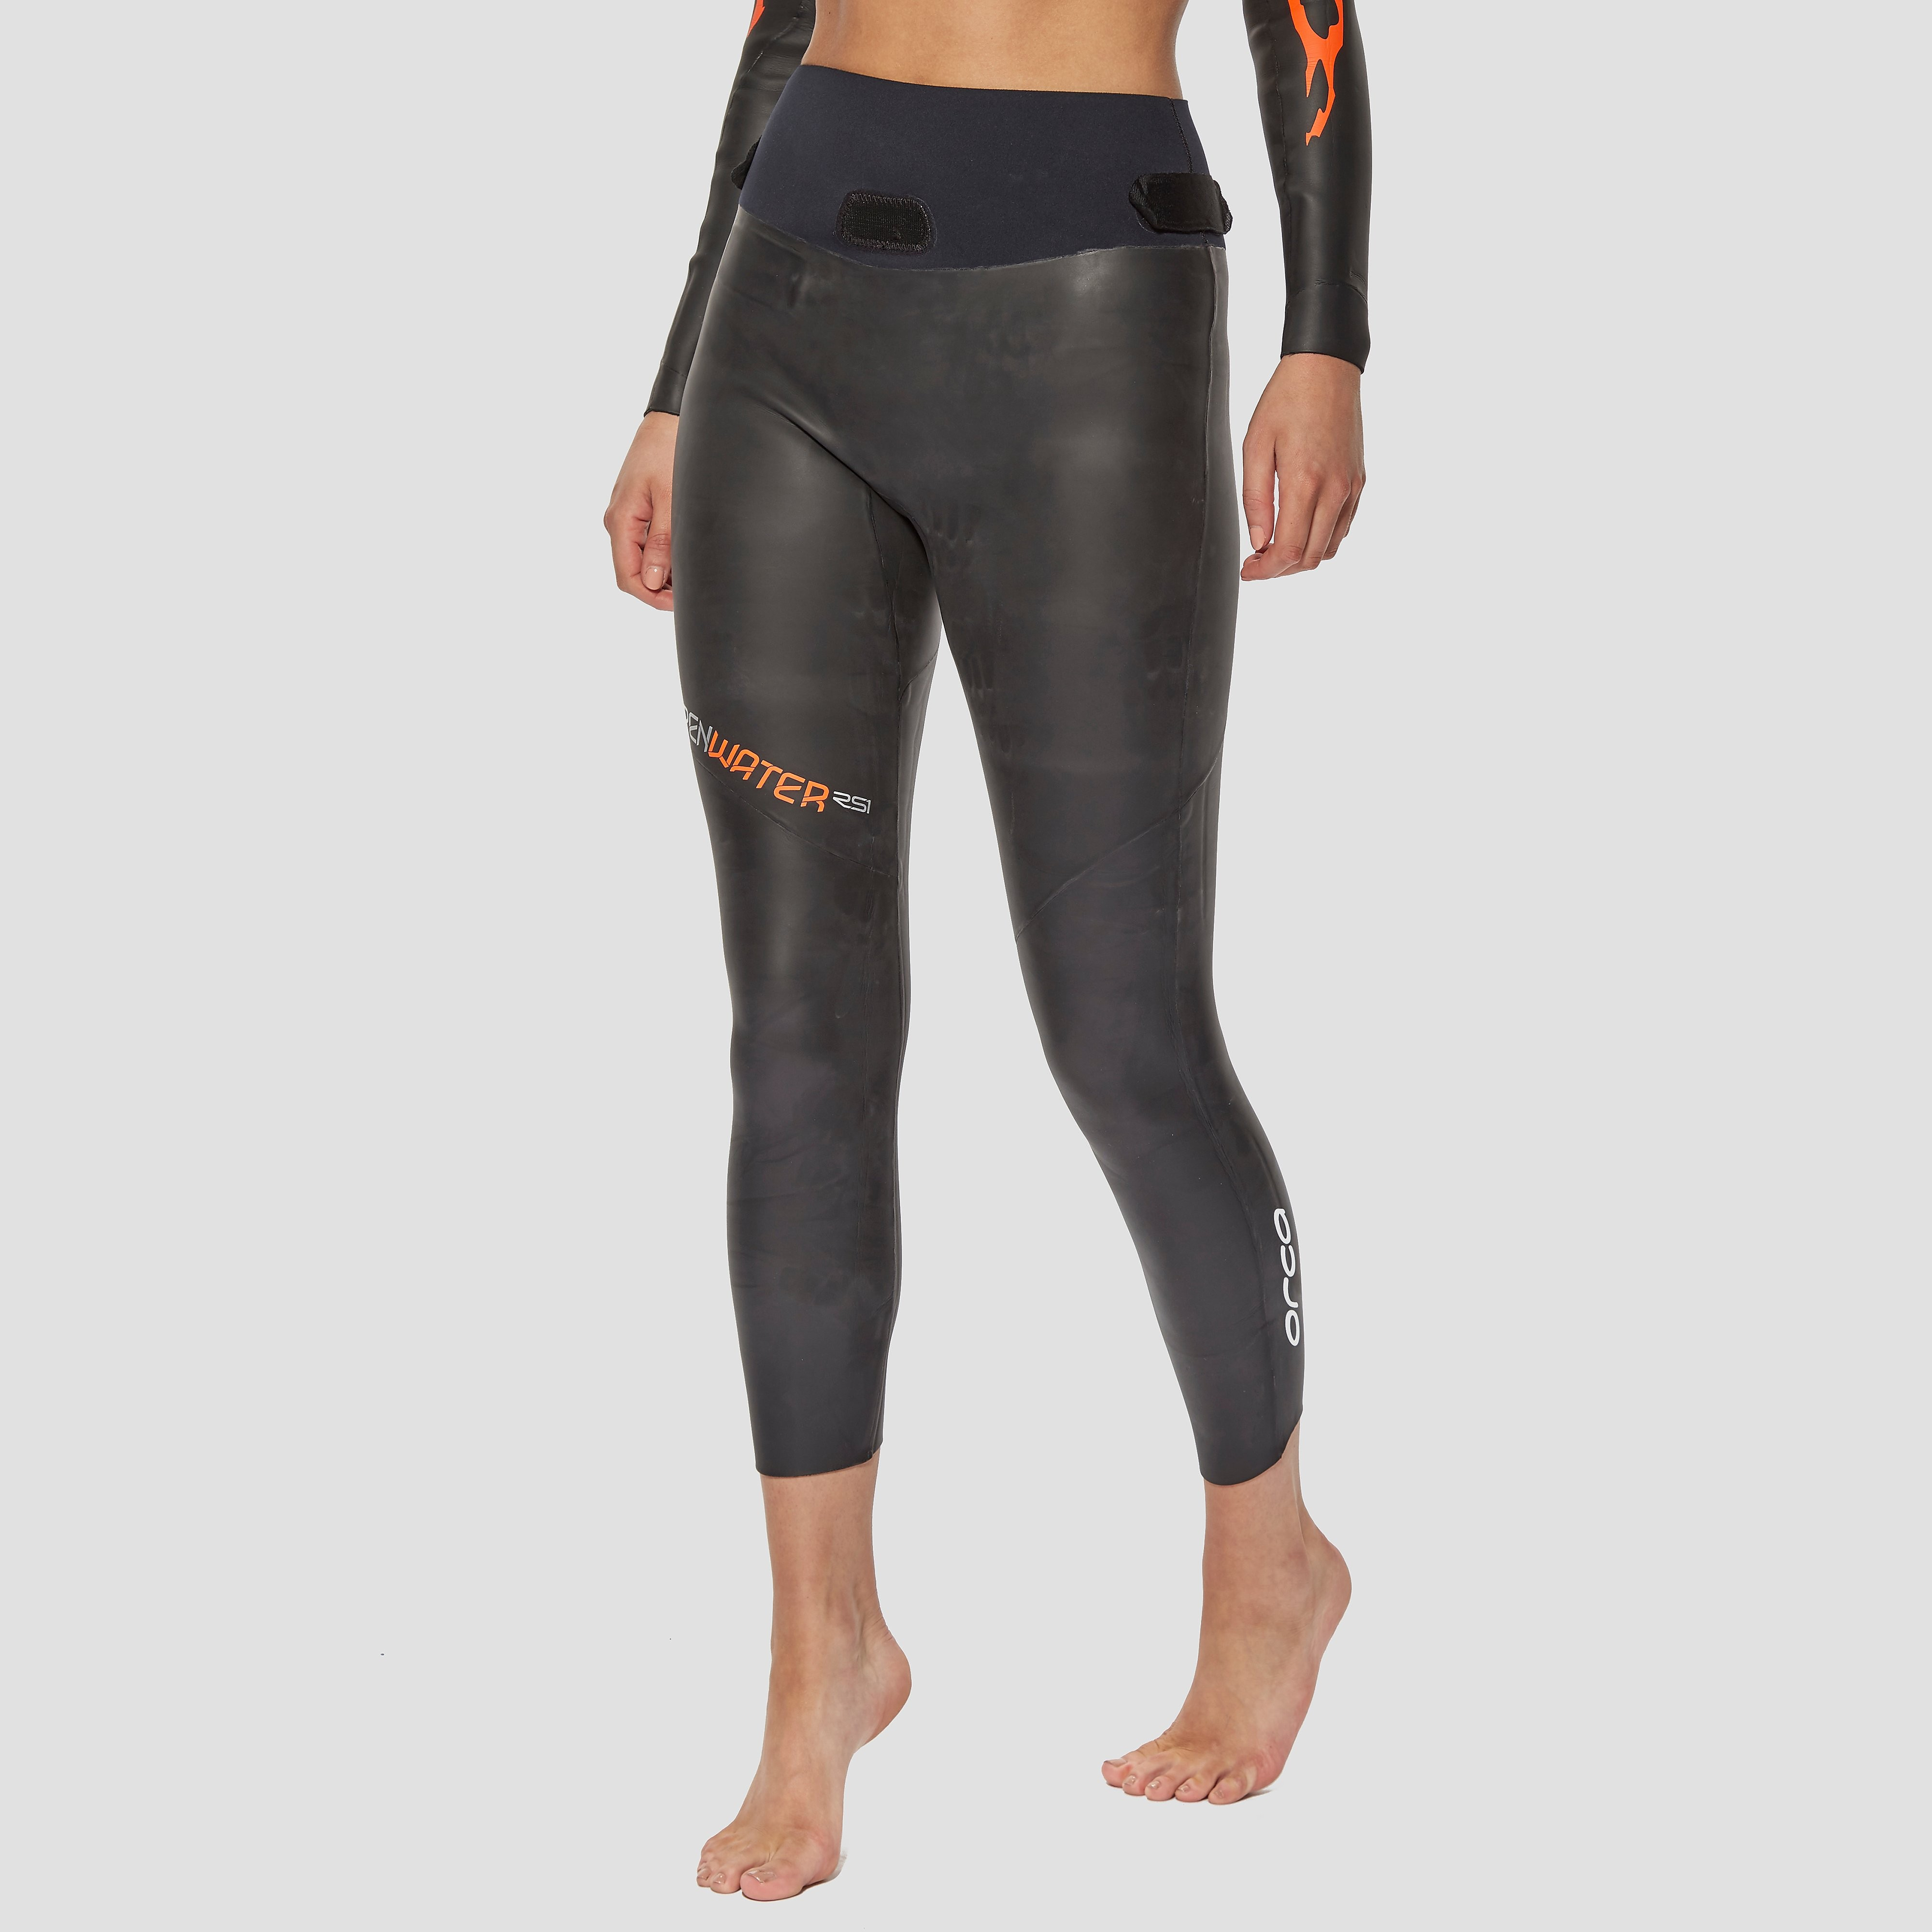 Orca RS1 Openwater Women's Wetsuit Bottoms